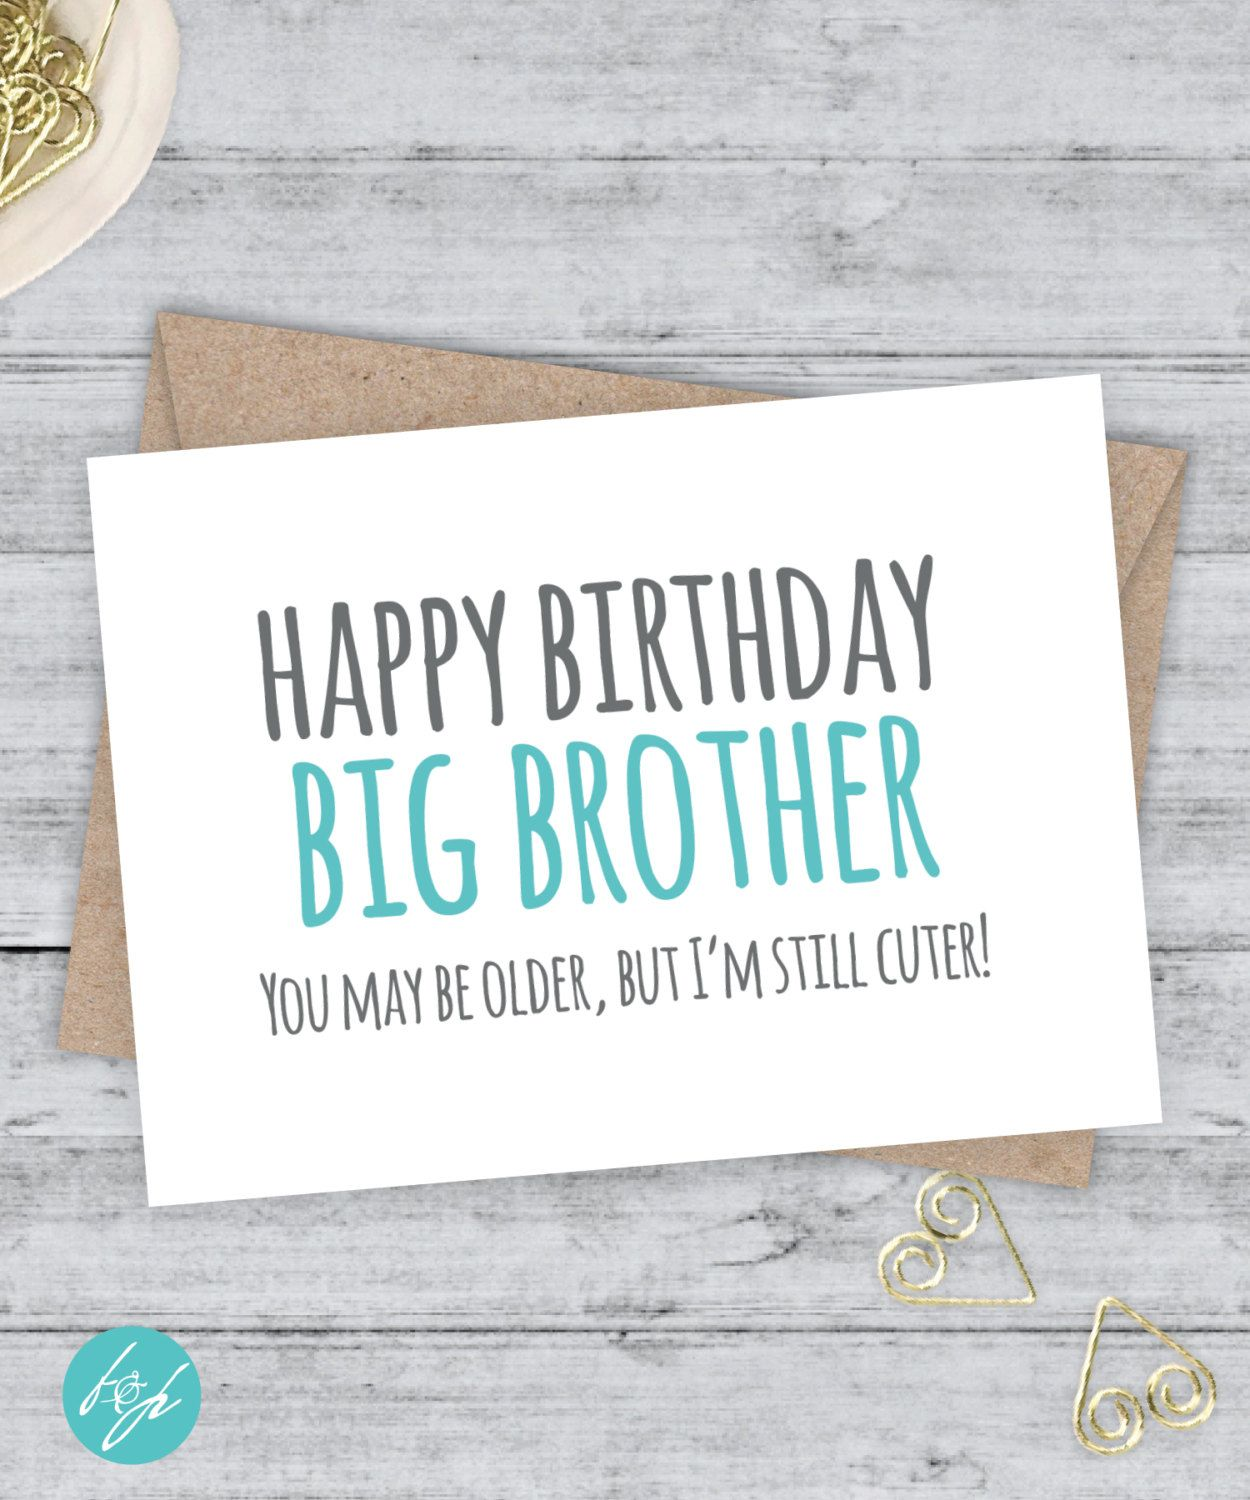 Sister Birthday Card Funny Brother Older Big You May Be But Im Still Cuter By FlairandPaper On